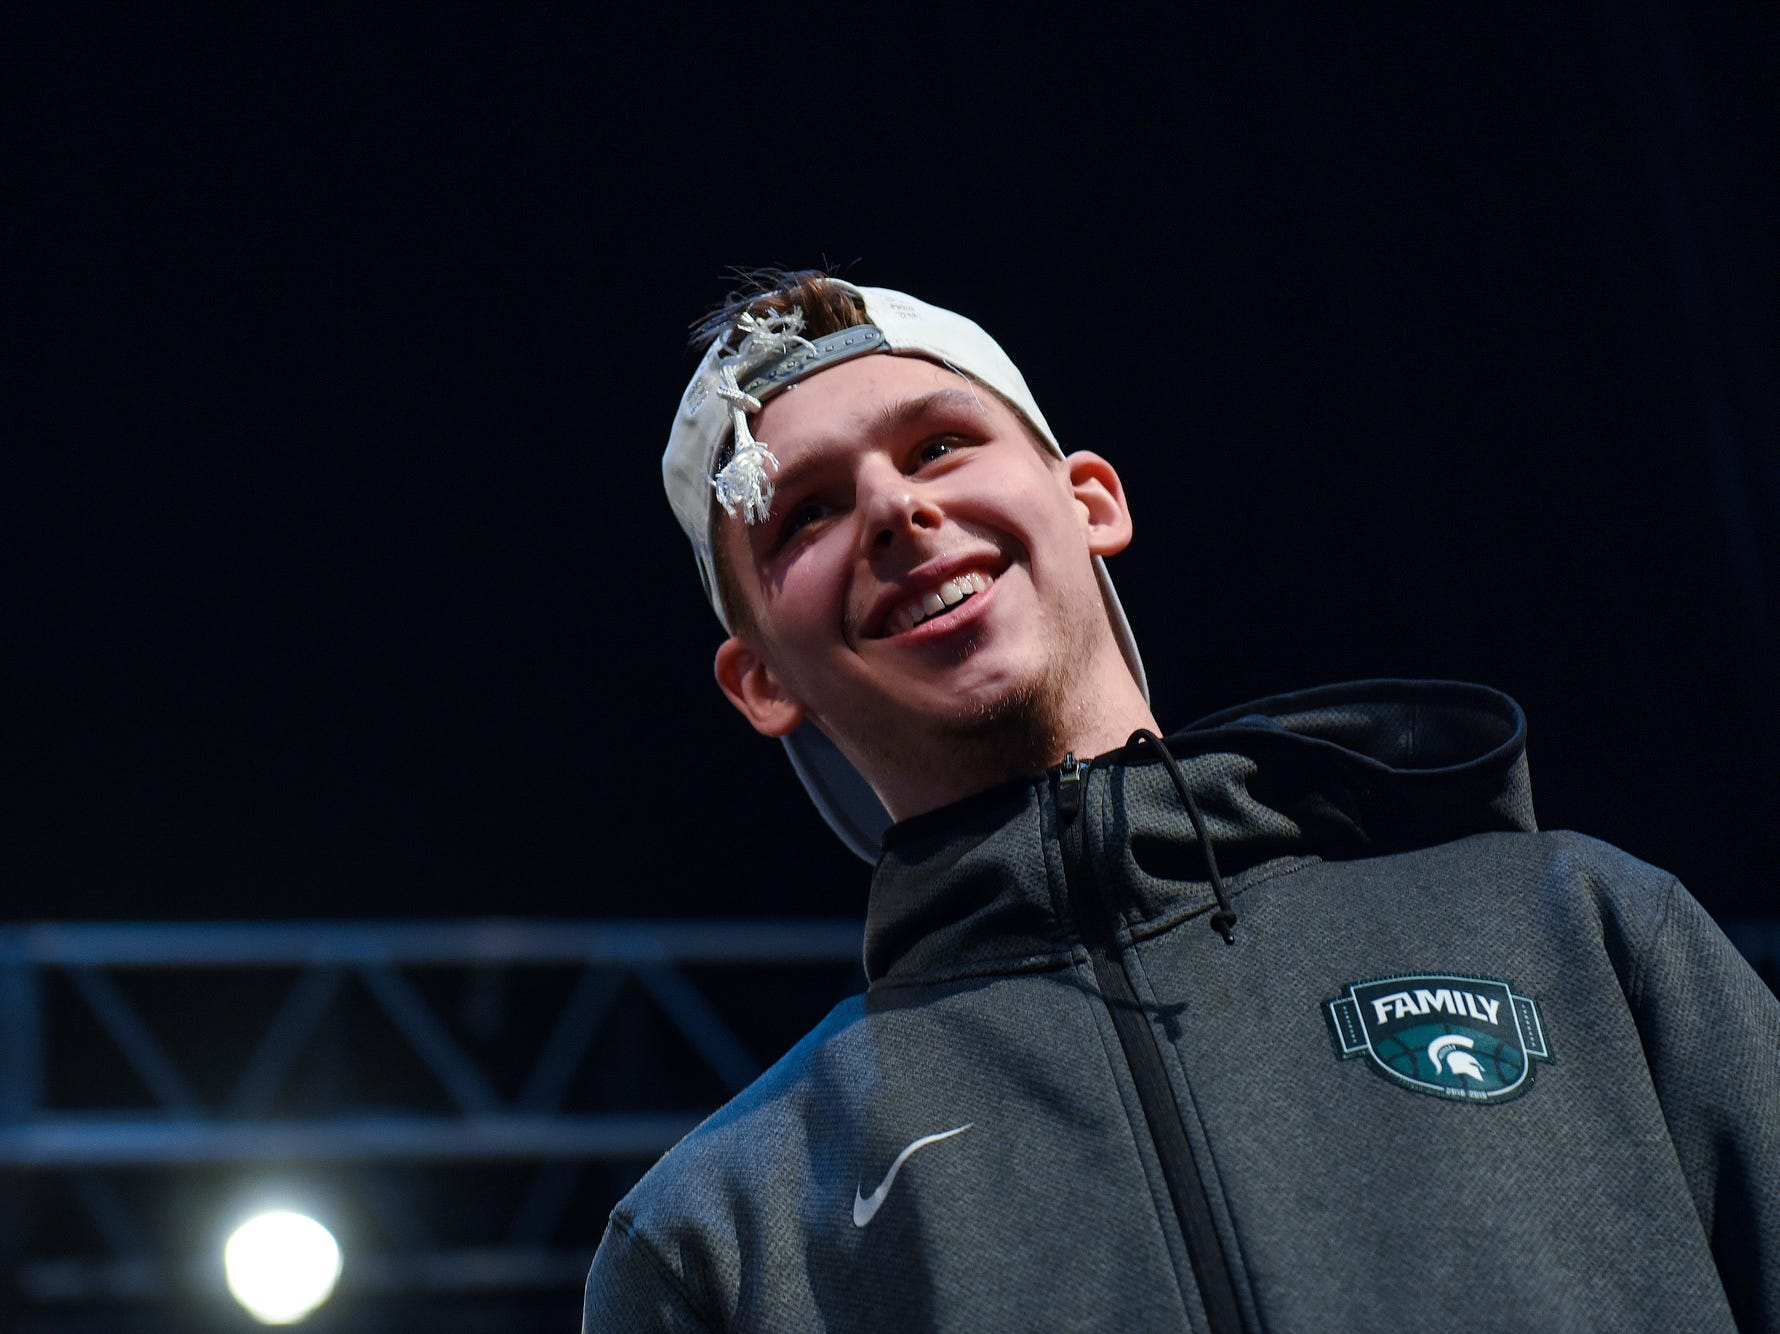 Michigan State's Matt McQuaid smiles while addressing the crowd during a rally after MSU's victory over Duke on Sunday, March 31, 2019, at the Breslin Center in East Lansing. The Spartans beat Duke 68-67 to reach the Final Four.